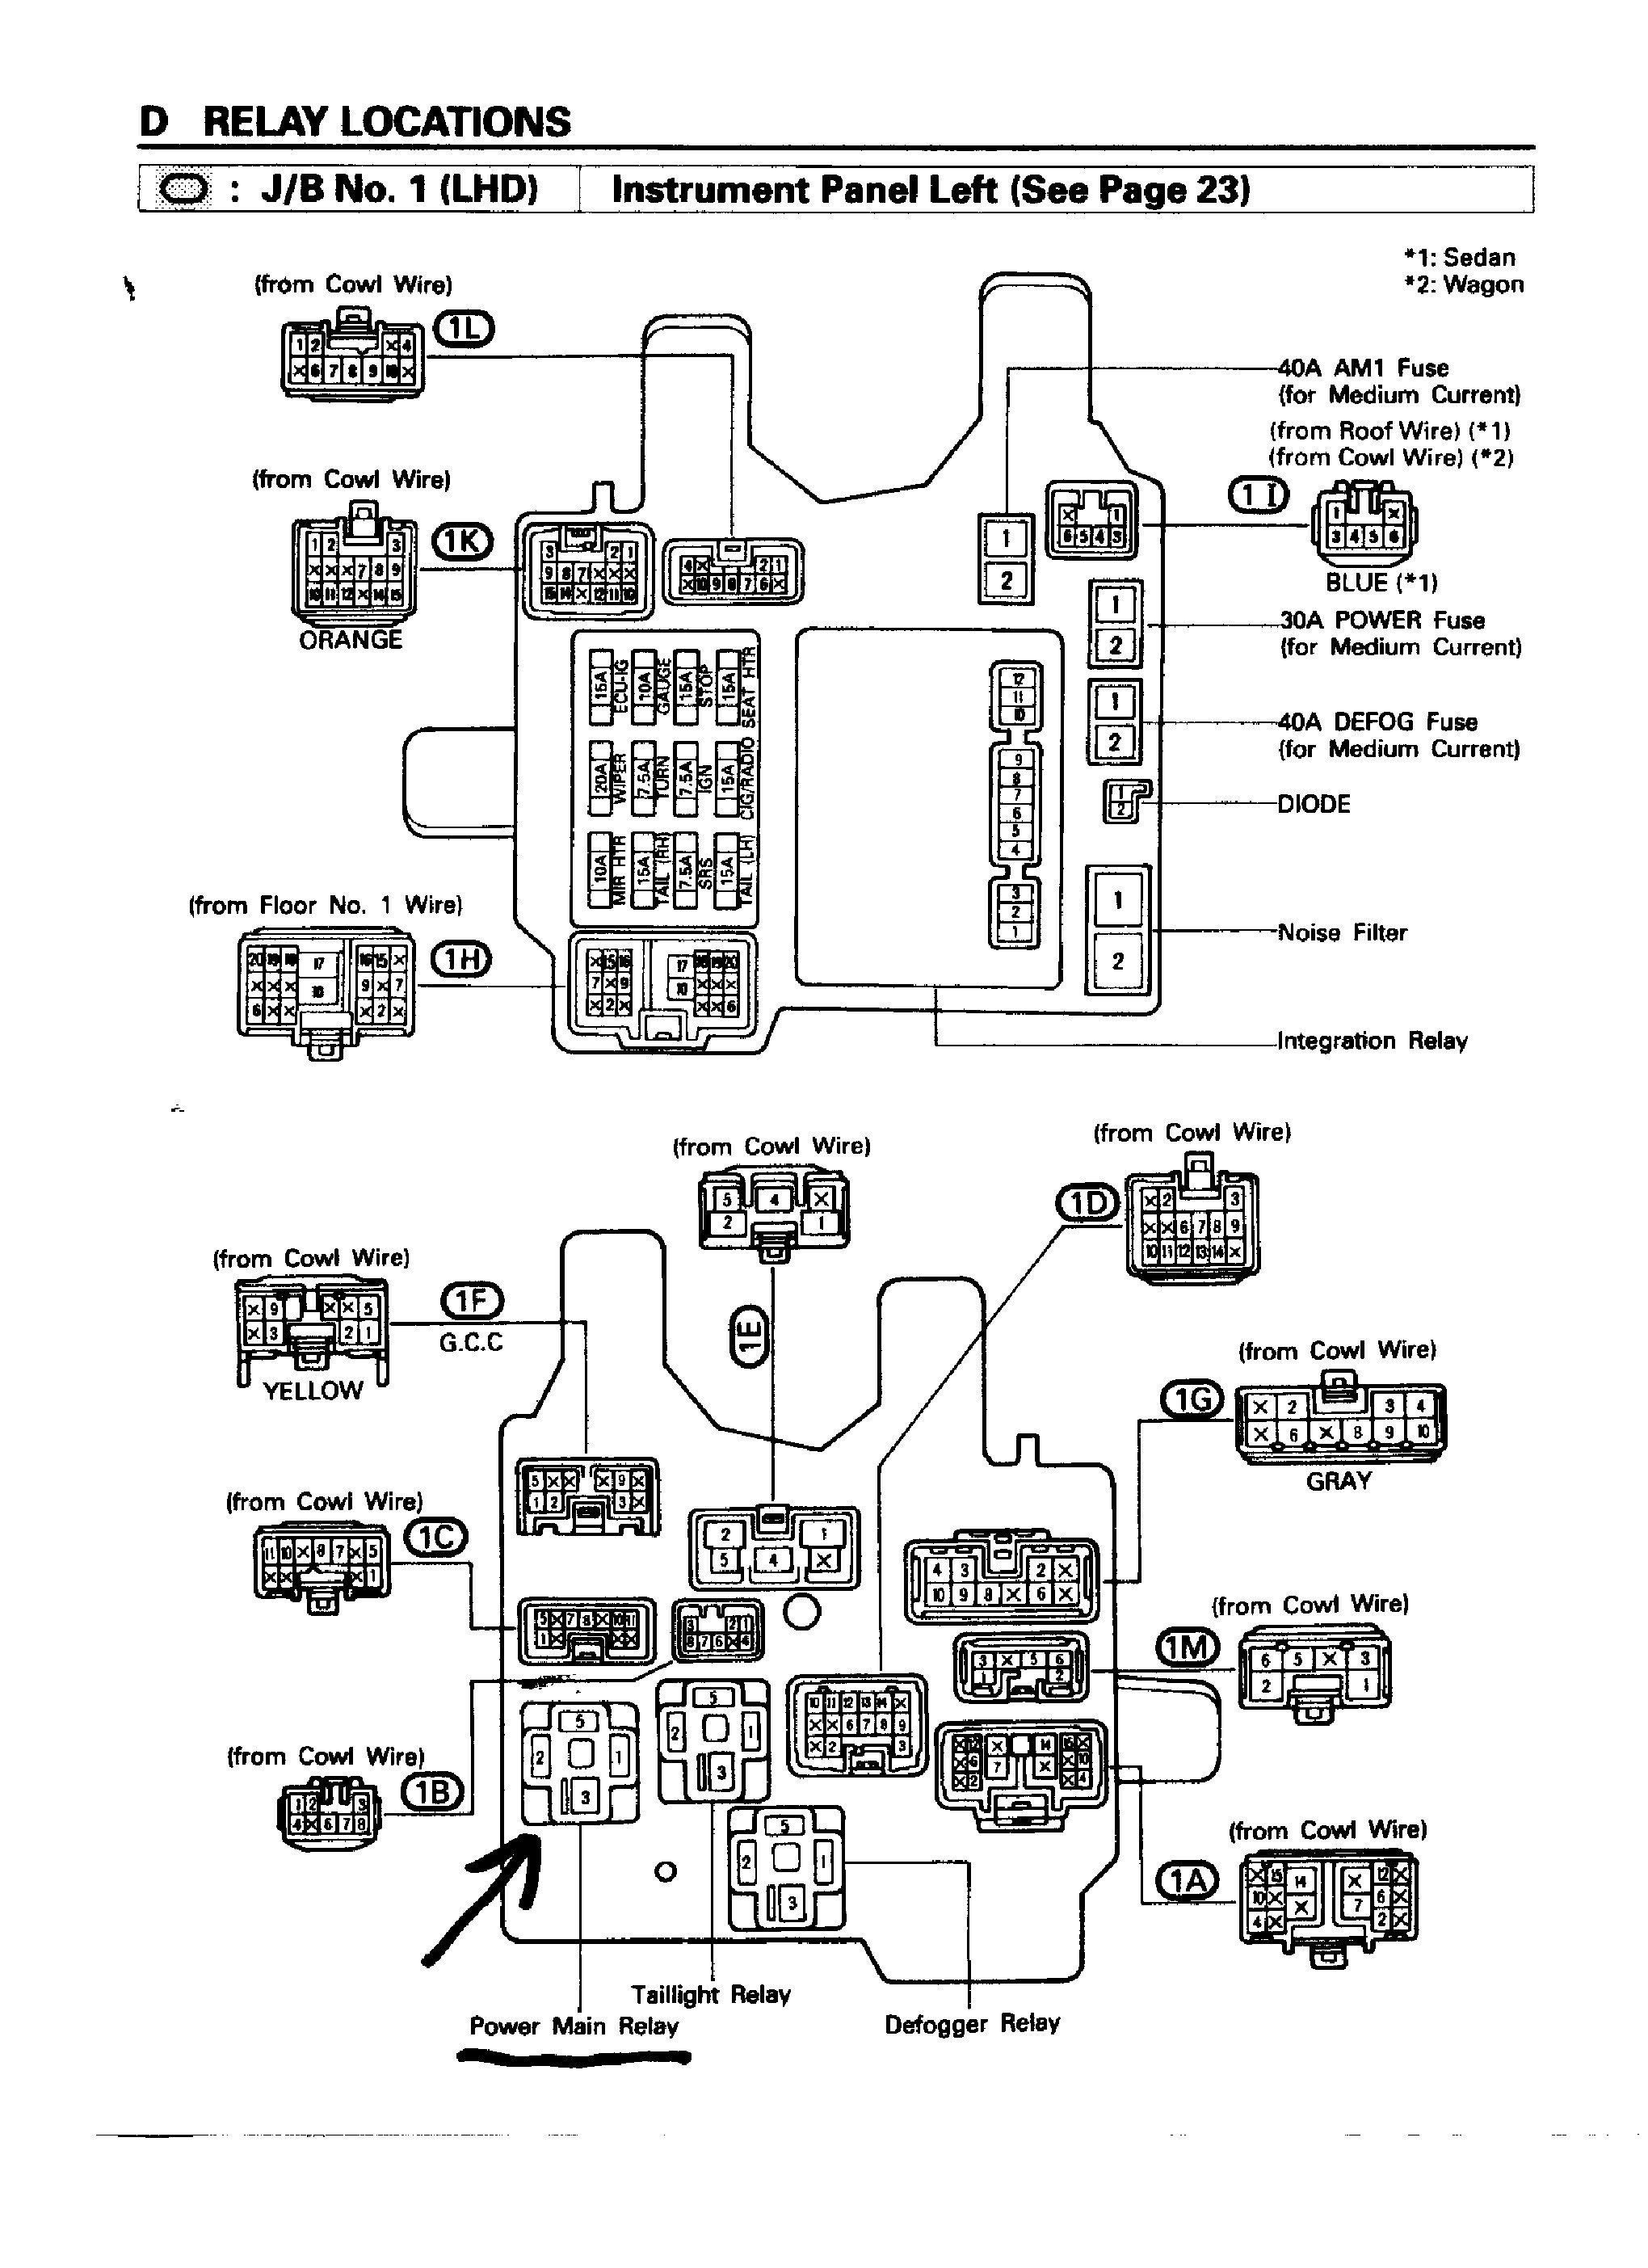 schematic diagram for toyota corolla complete wiring 4 wire trailer wiring diagram troubleshooting 2010 toyota tundra headlight wiring